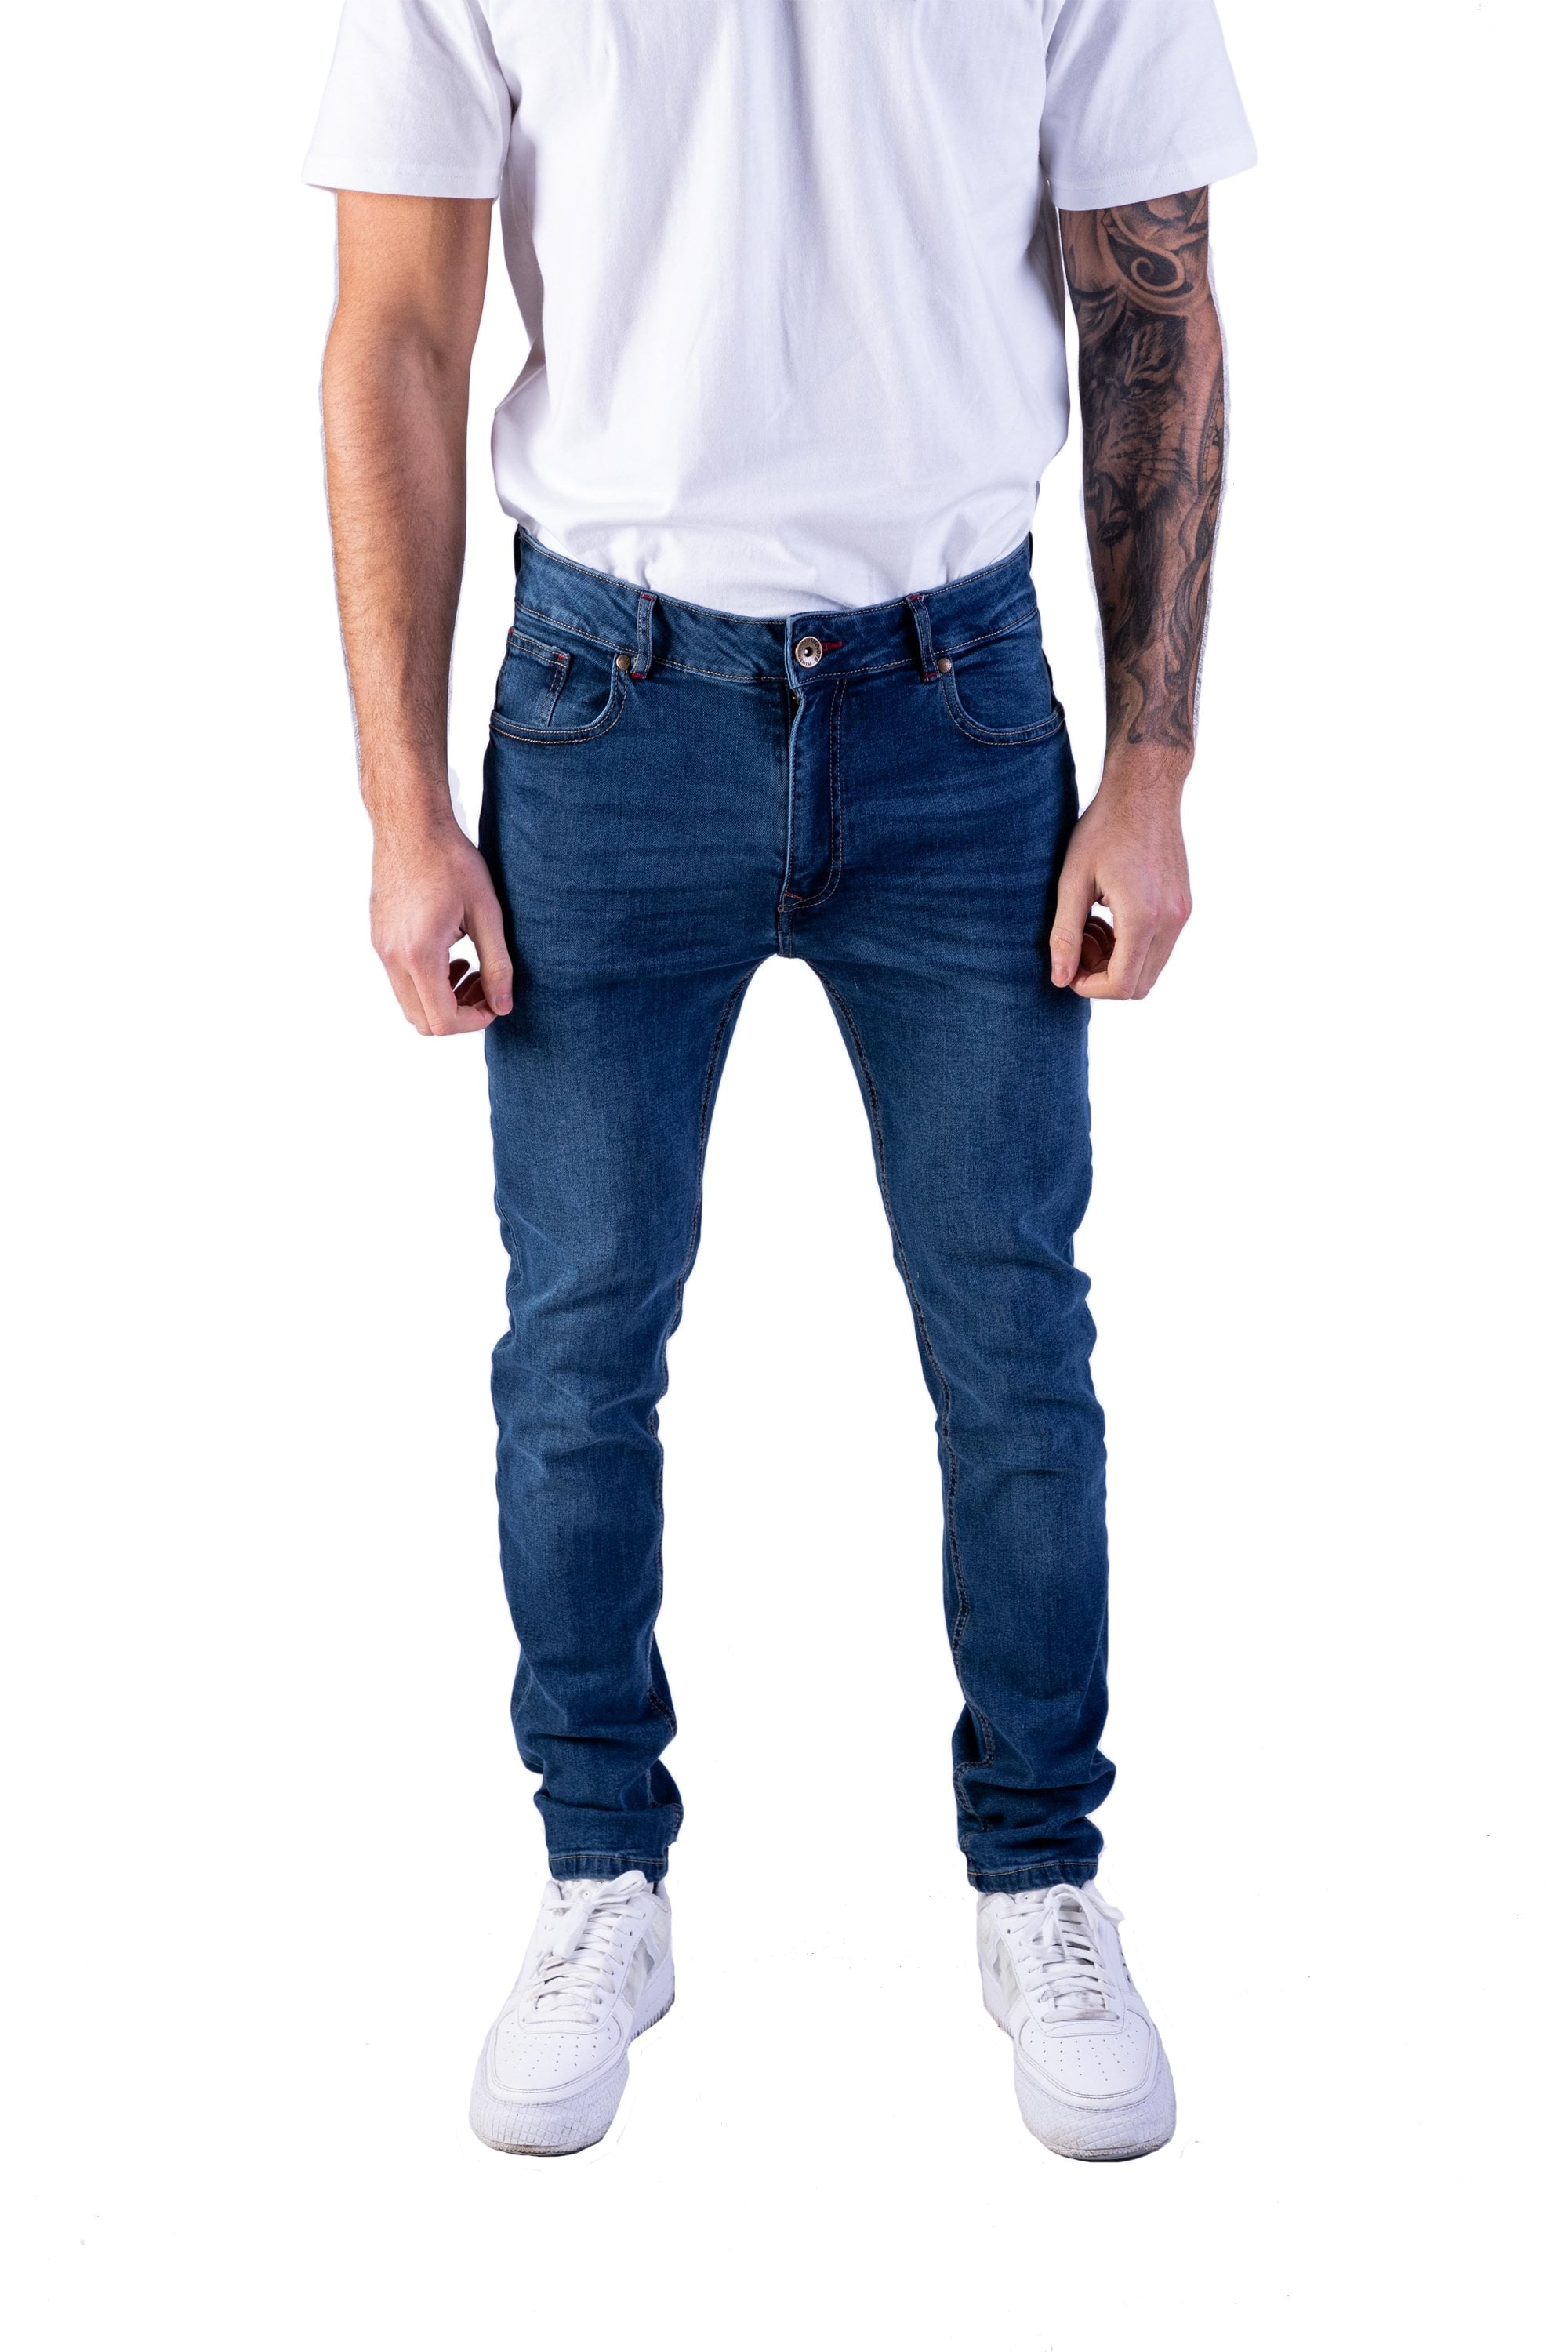 Men's Skinny Jeans at True Religion feature a slim tapered fit in the legs. Shop men's designer skinny jeans with Free Shipping at True Religion. True Religion.